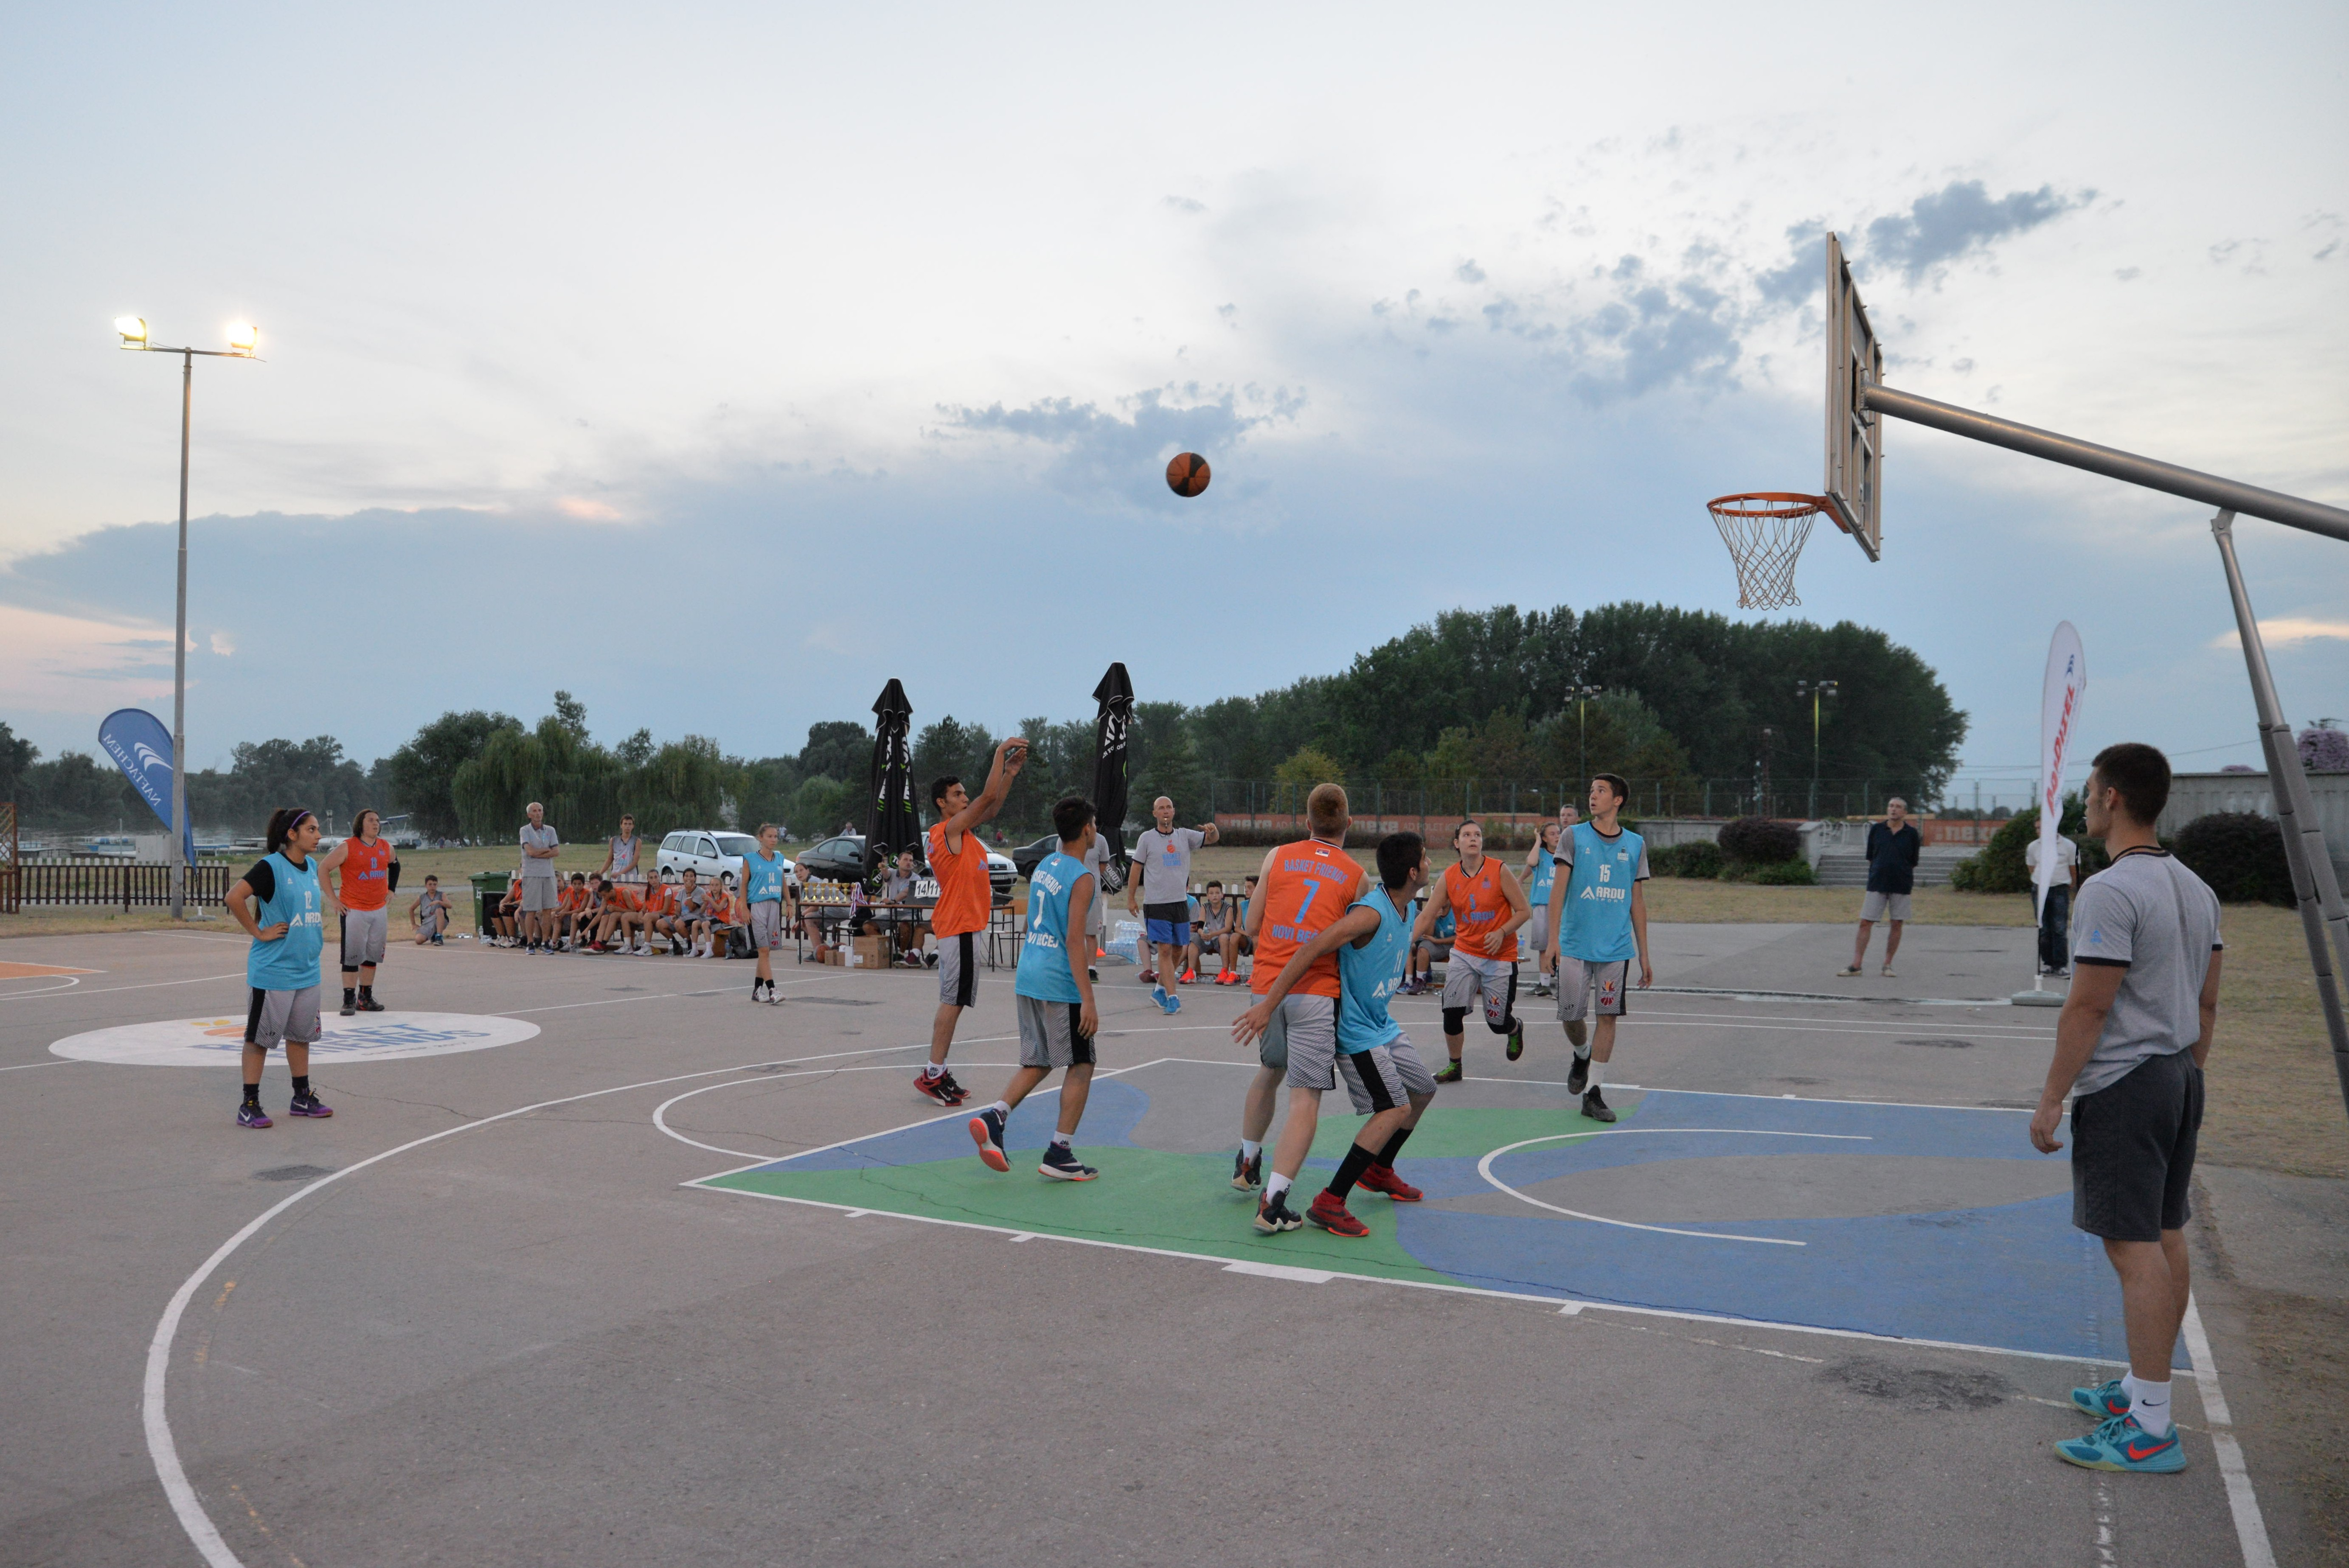 Basketfriends 2017. - 5 on 5 competition